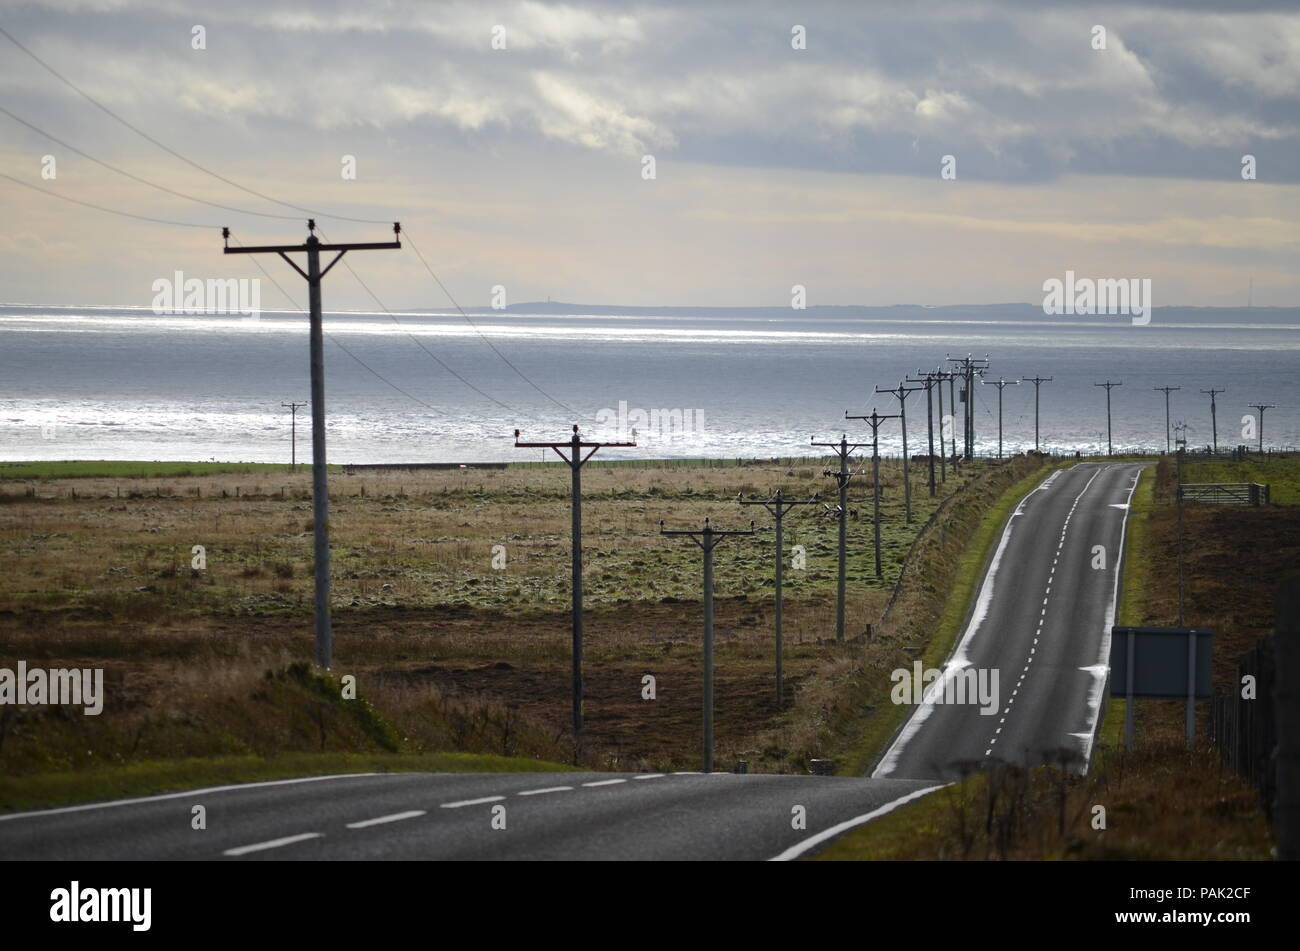 A road in the Orkney Islands in the British Isles - Stock Image